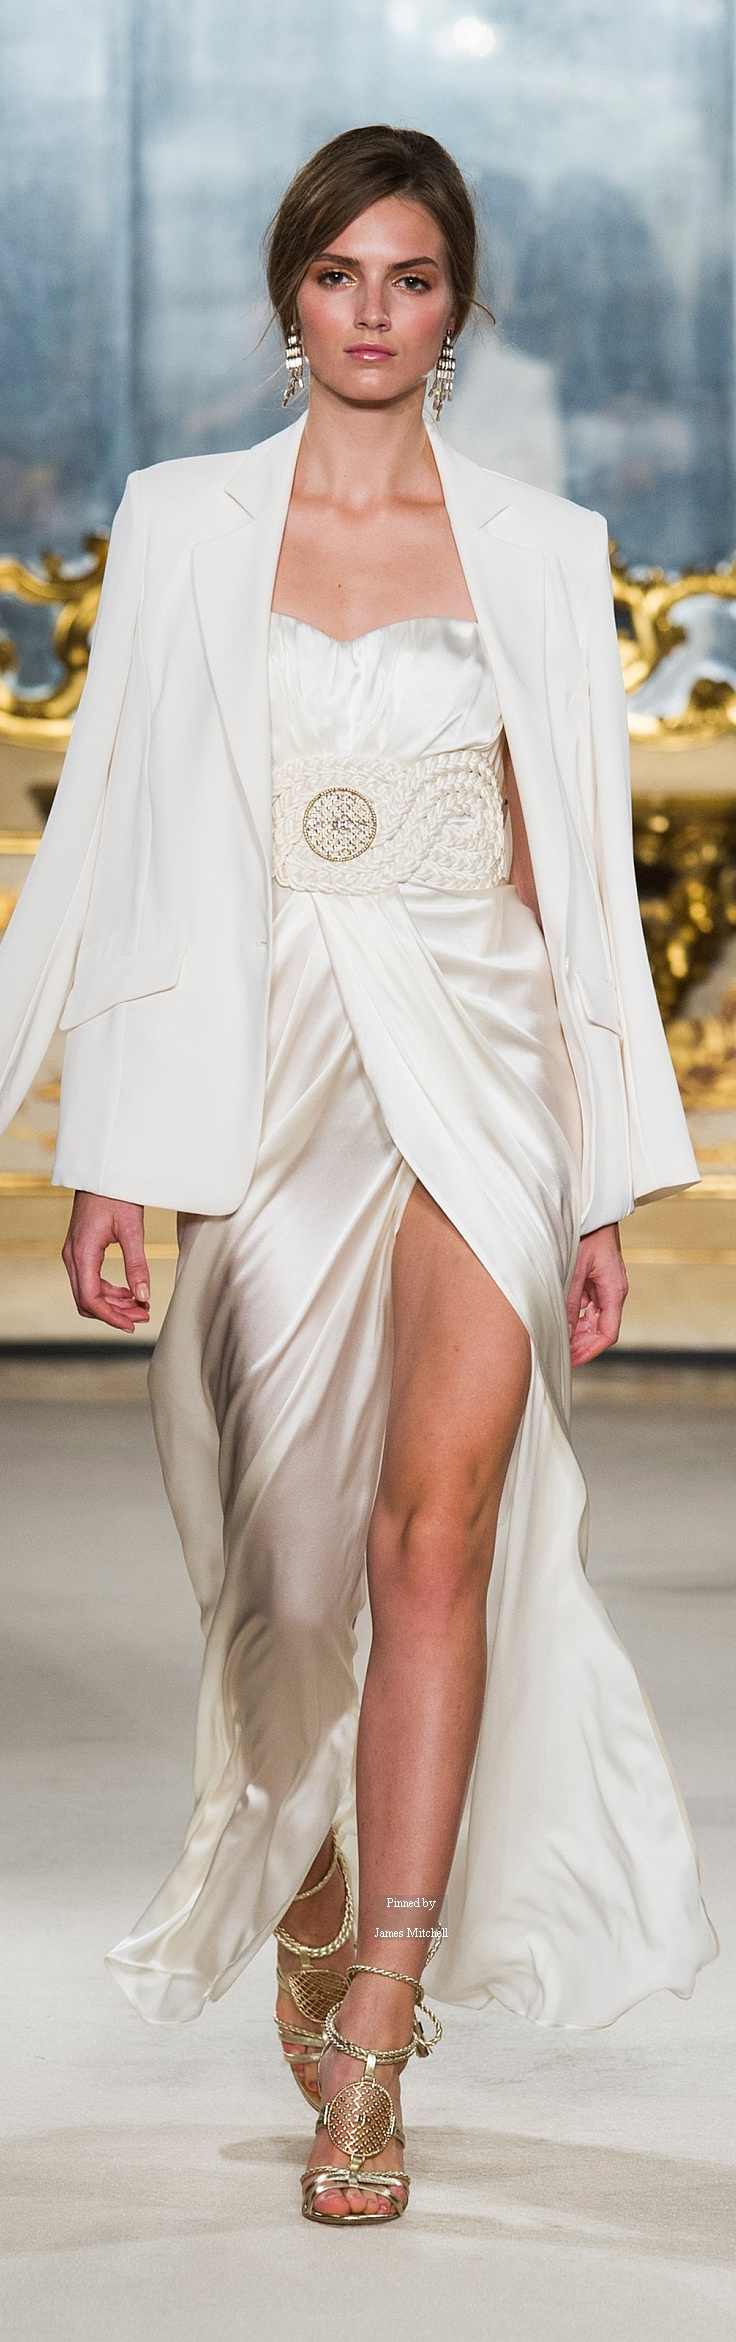 Elisabetta Franchi  Collection Spring Summer  2015 Ready-to-Wear